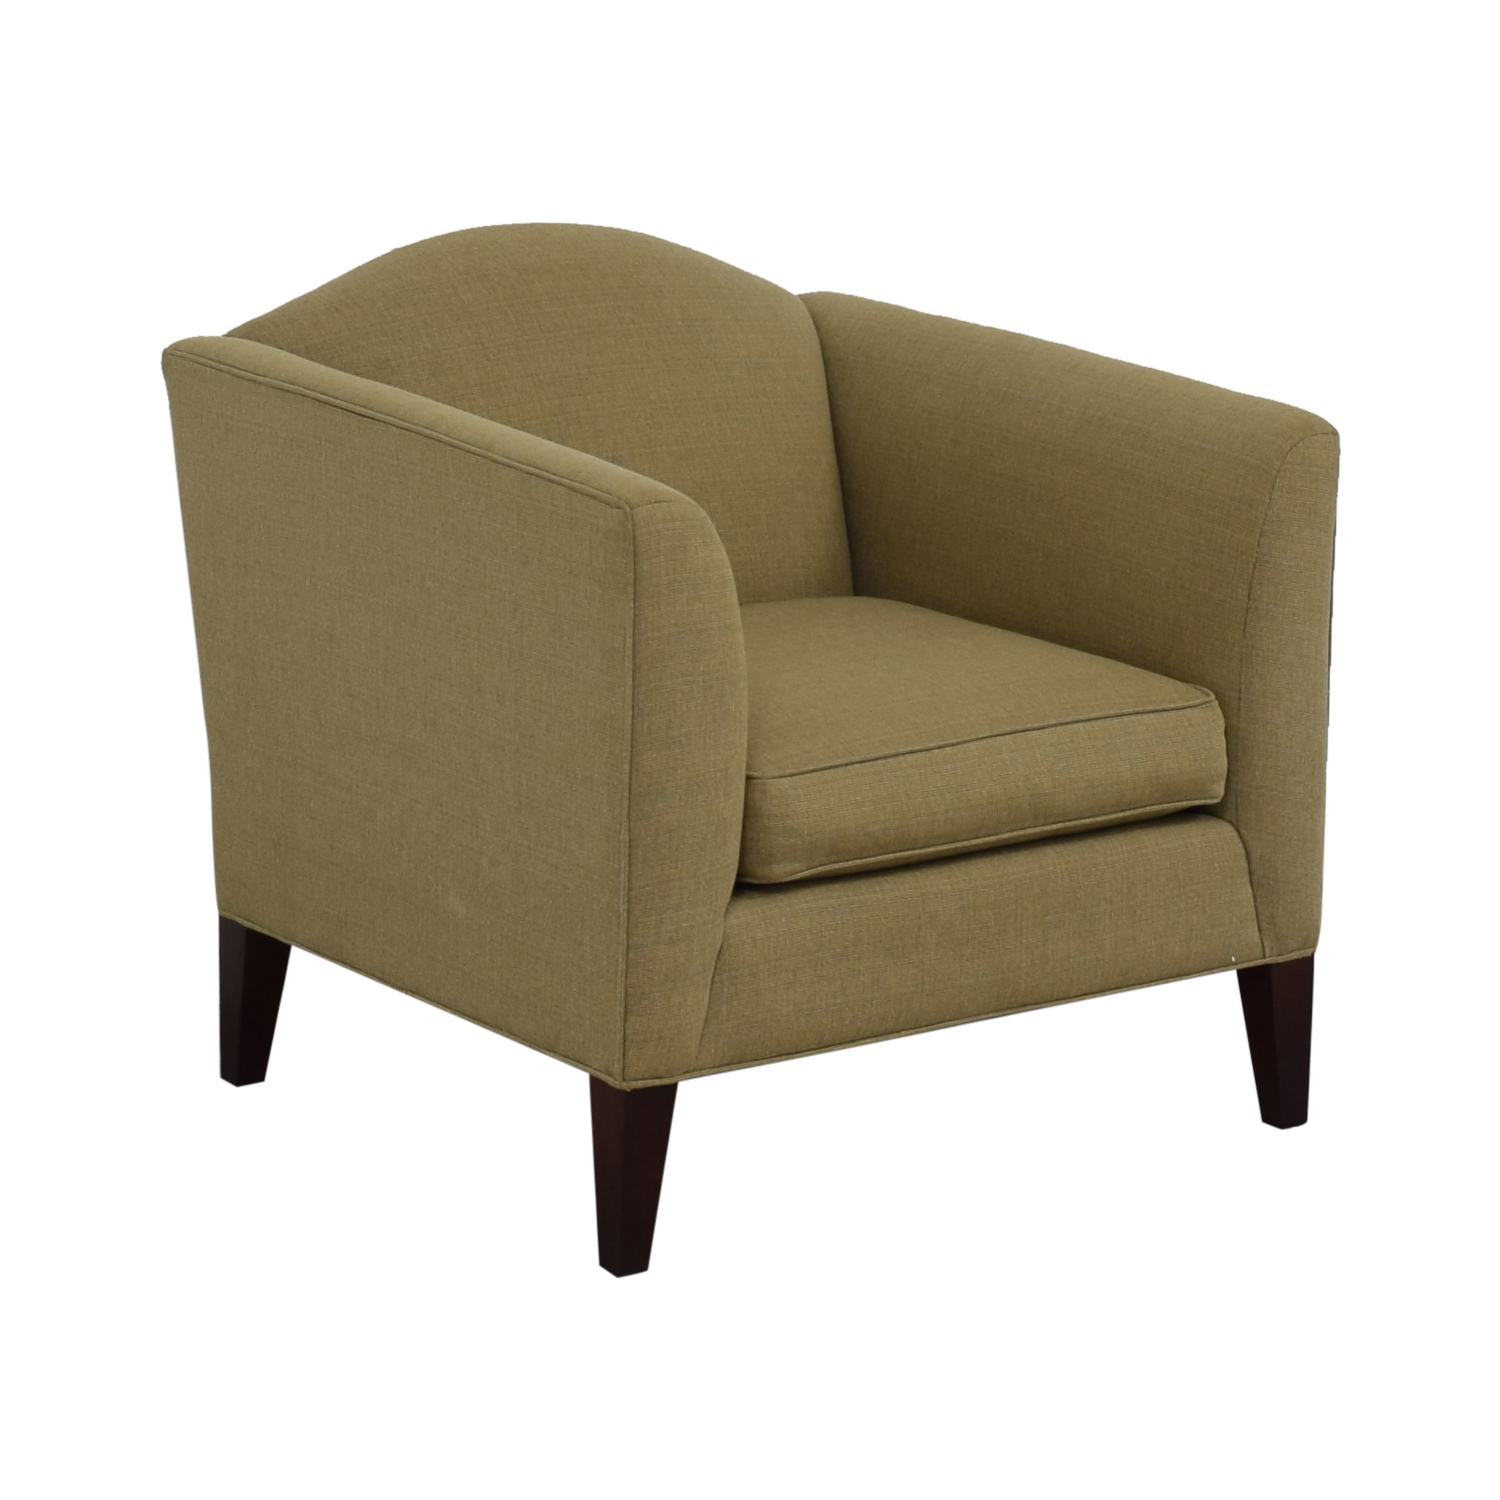 buy Room & Board Flanagan Grey Accent Chair Room & Board Chairs